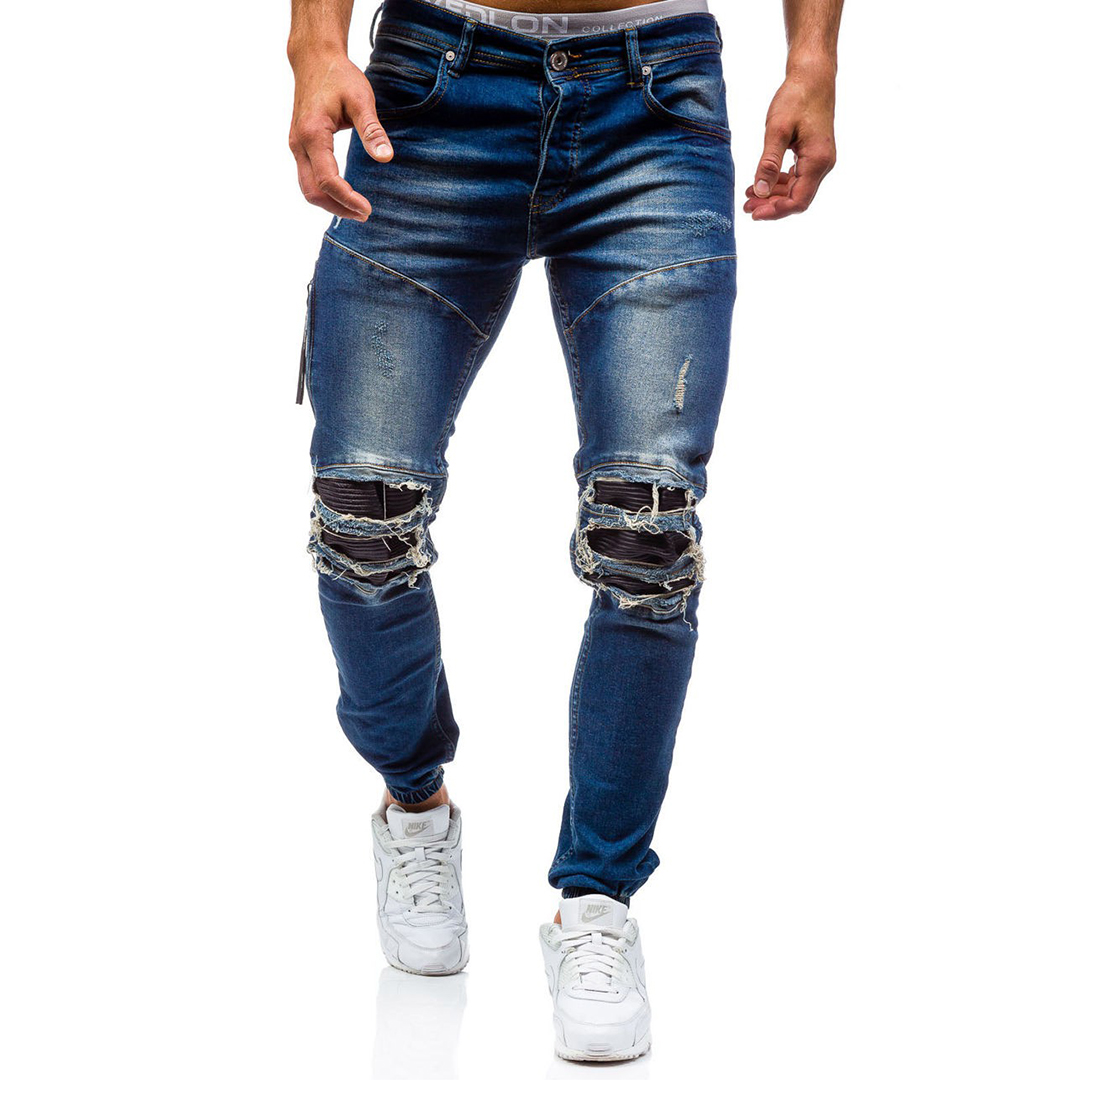 2017 New Men'S Jeans Ripped Beggar Holes Pants Korean Style Elasticity Casual Trousers Cool Stretch Man Denim Pants 38 beggar s feast